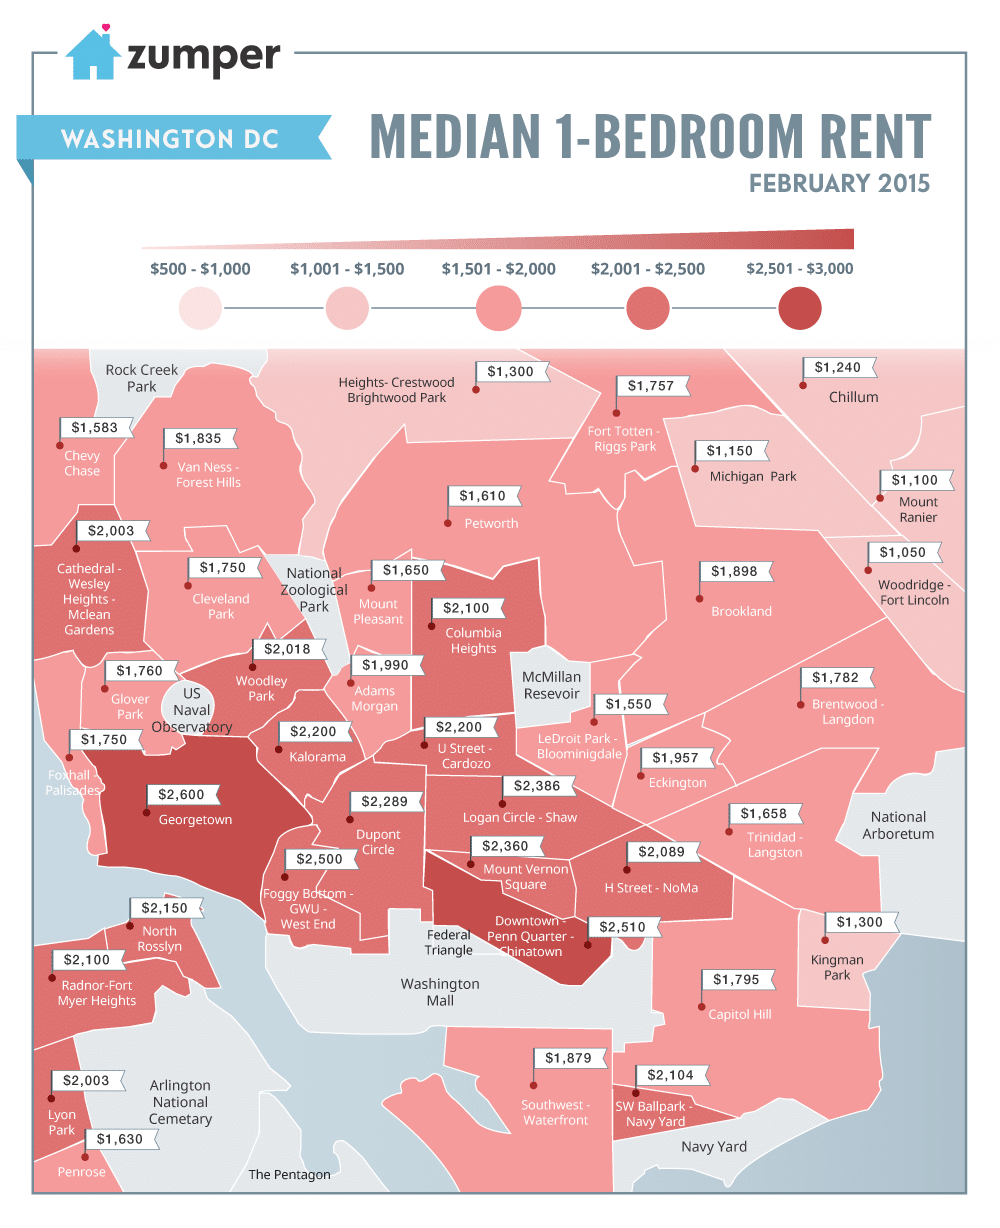 D.C. Was The 4th Most Expensive City To Rent This February